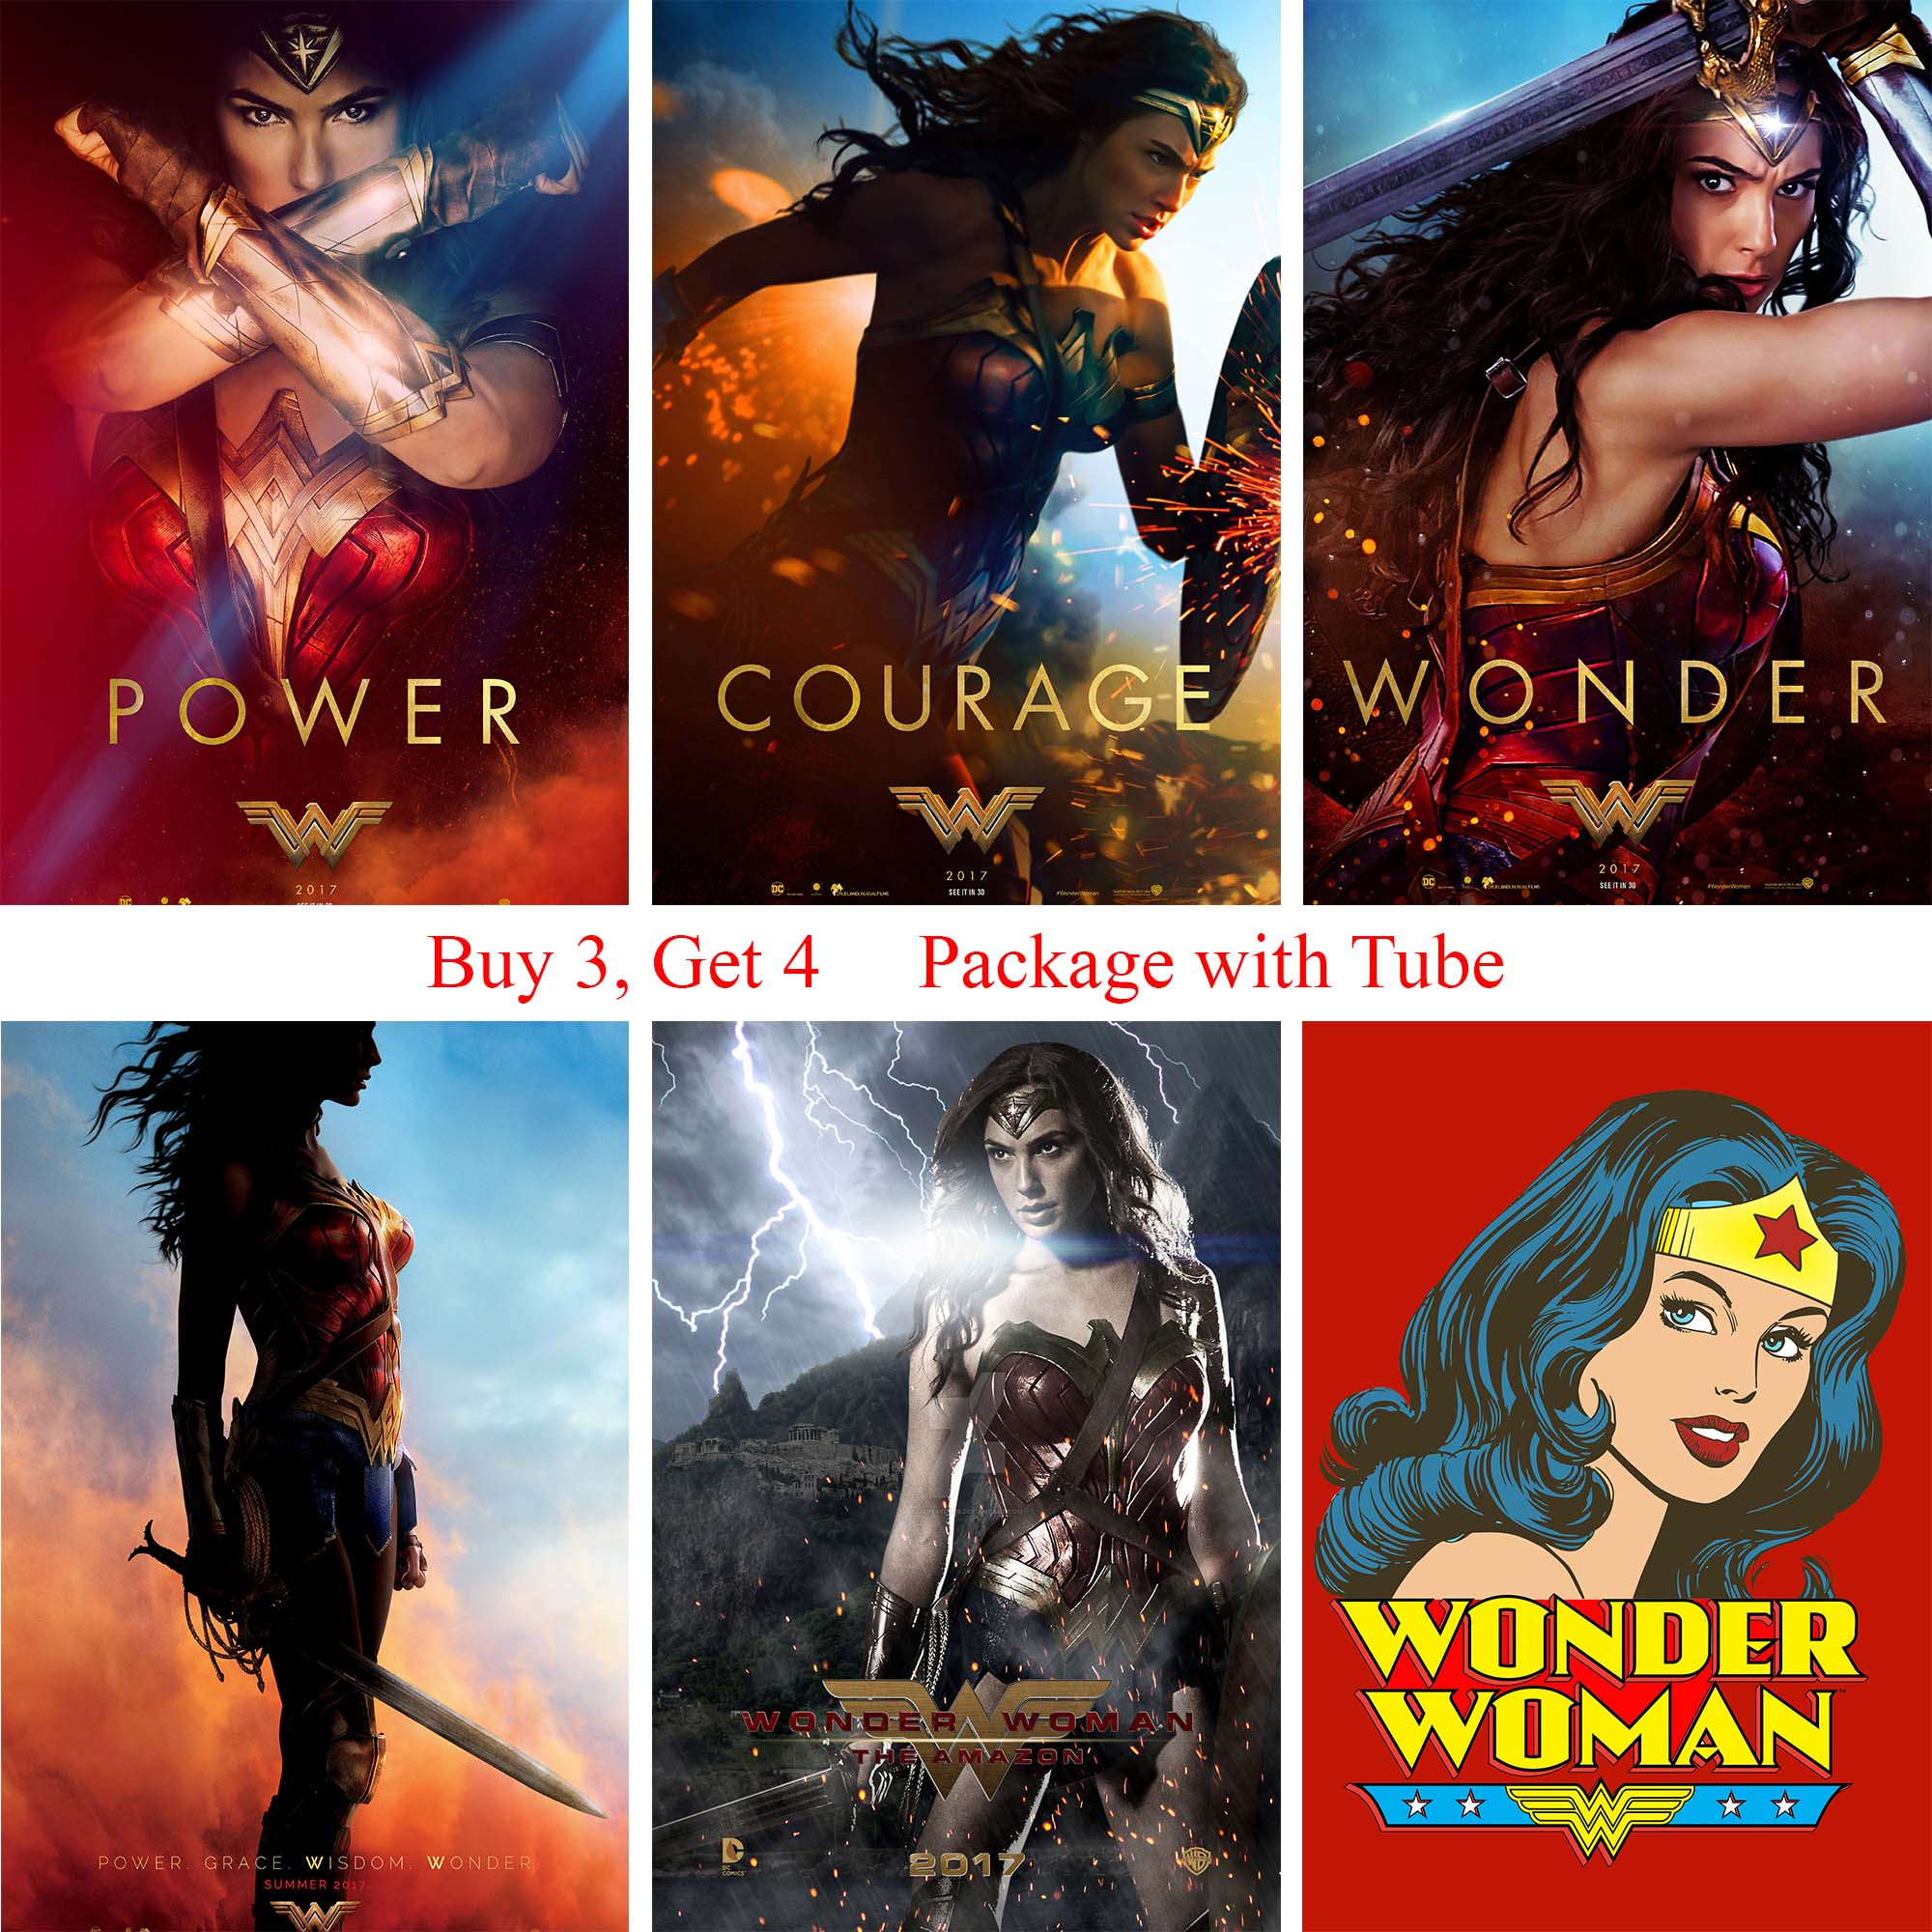 Wonder Woman Posters Wall Stickers High Quality Home Decoration White Coated Paper Prints Home Art Brand